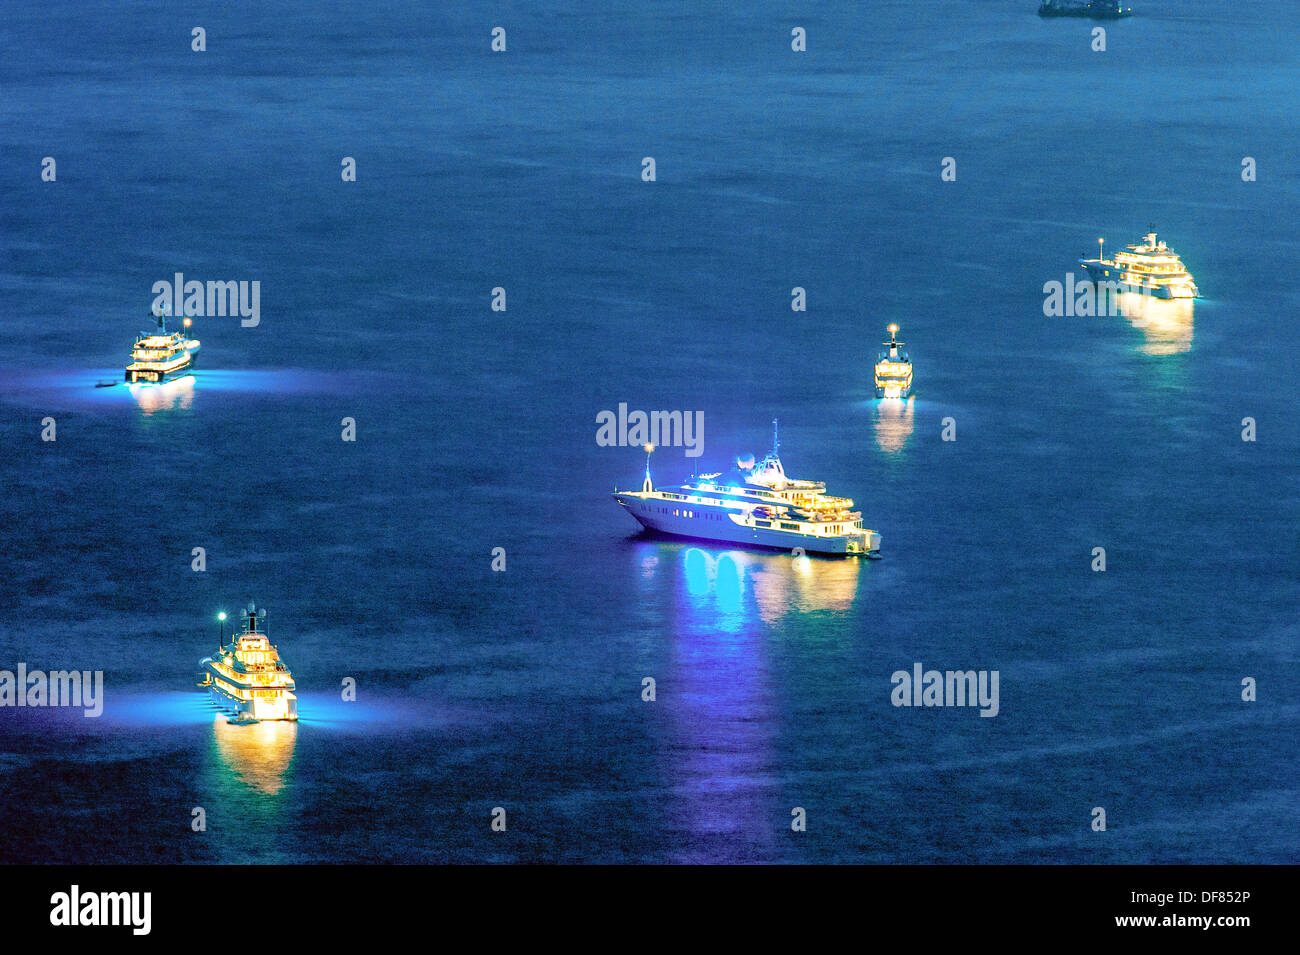 Europe, France, Principality of Monaco, Monte Carlo. Cruise ships off Monaco at night. - Stock Image